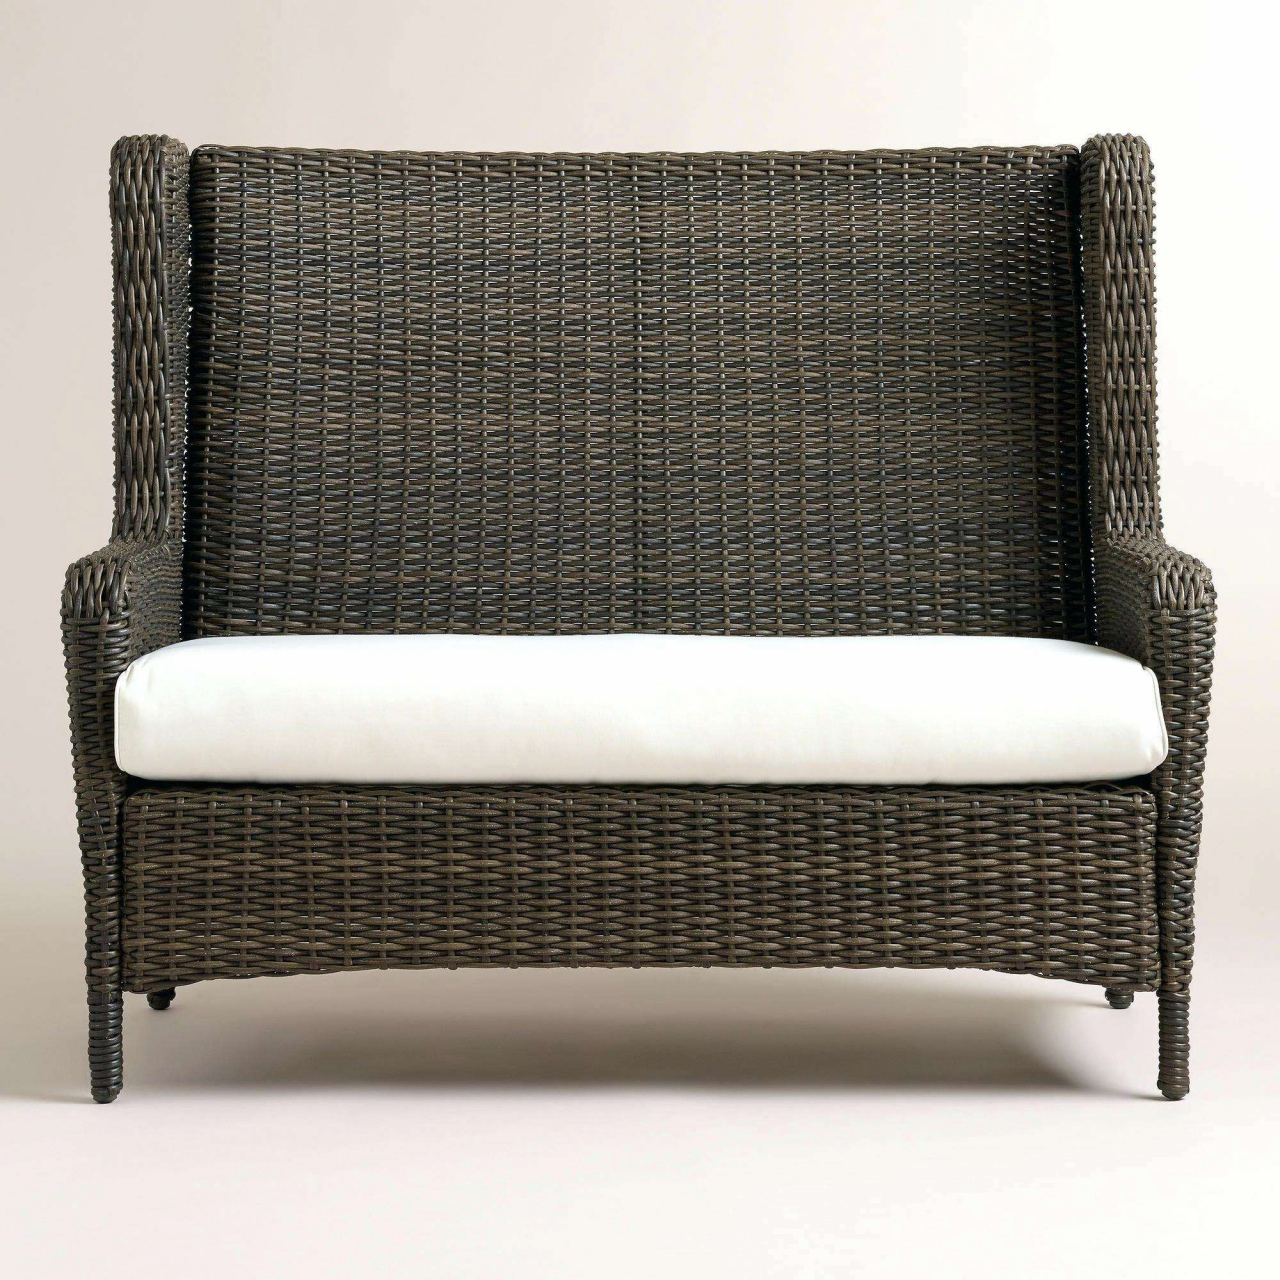 bistro patio set rattan sofa garten luxus recliner wicker outdoor sofa 0d patio durch bistro patio set